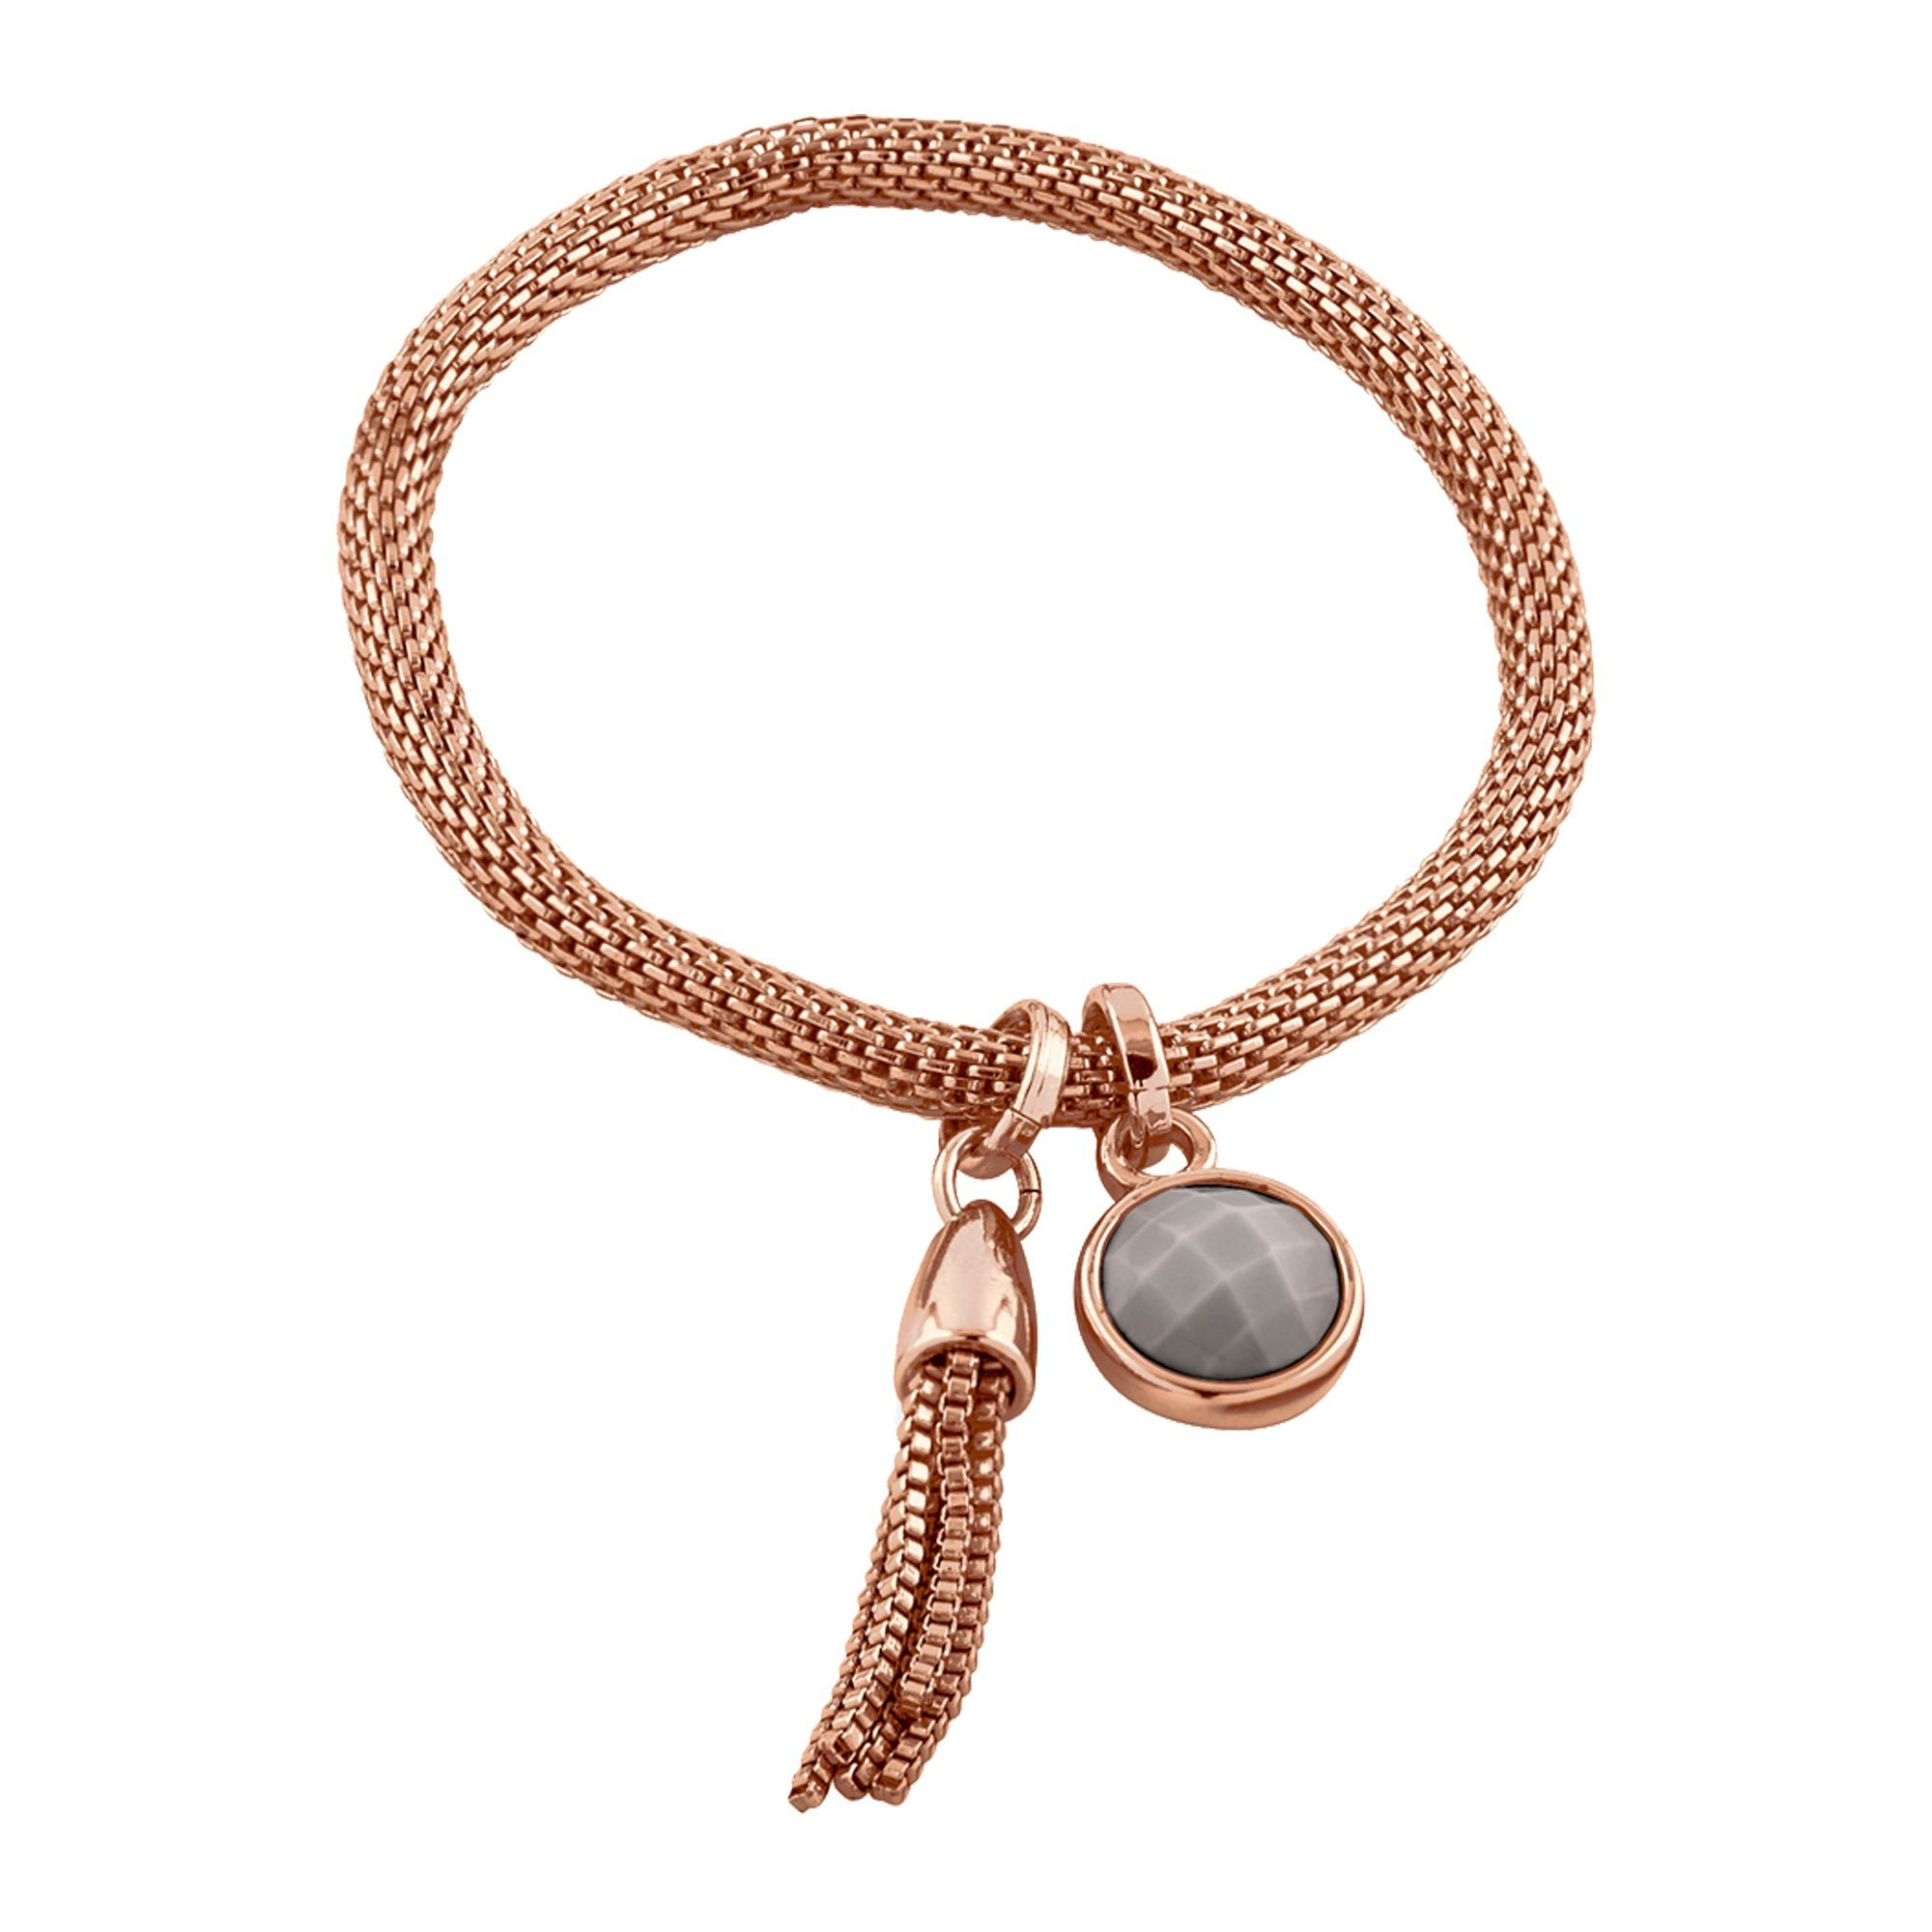 Buckley London Armschmuck Messing rosévergoldet mit Achat